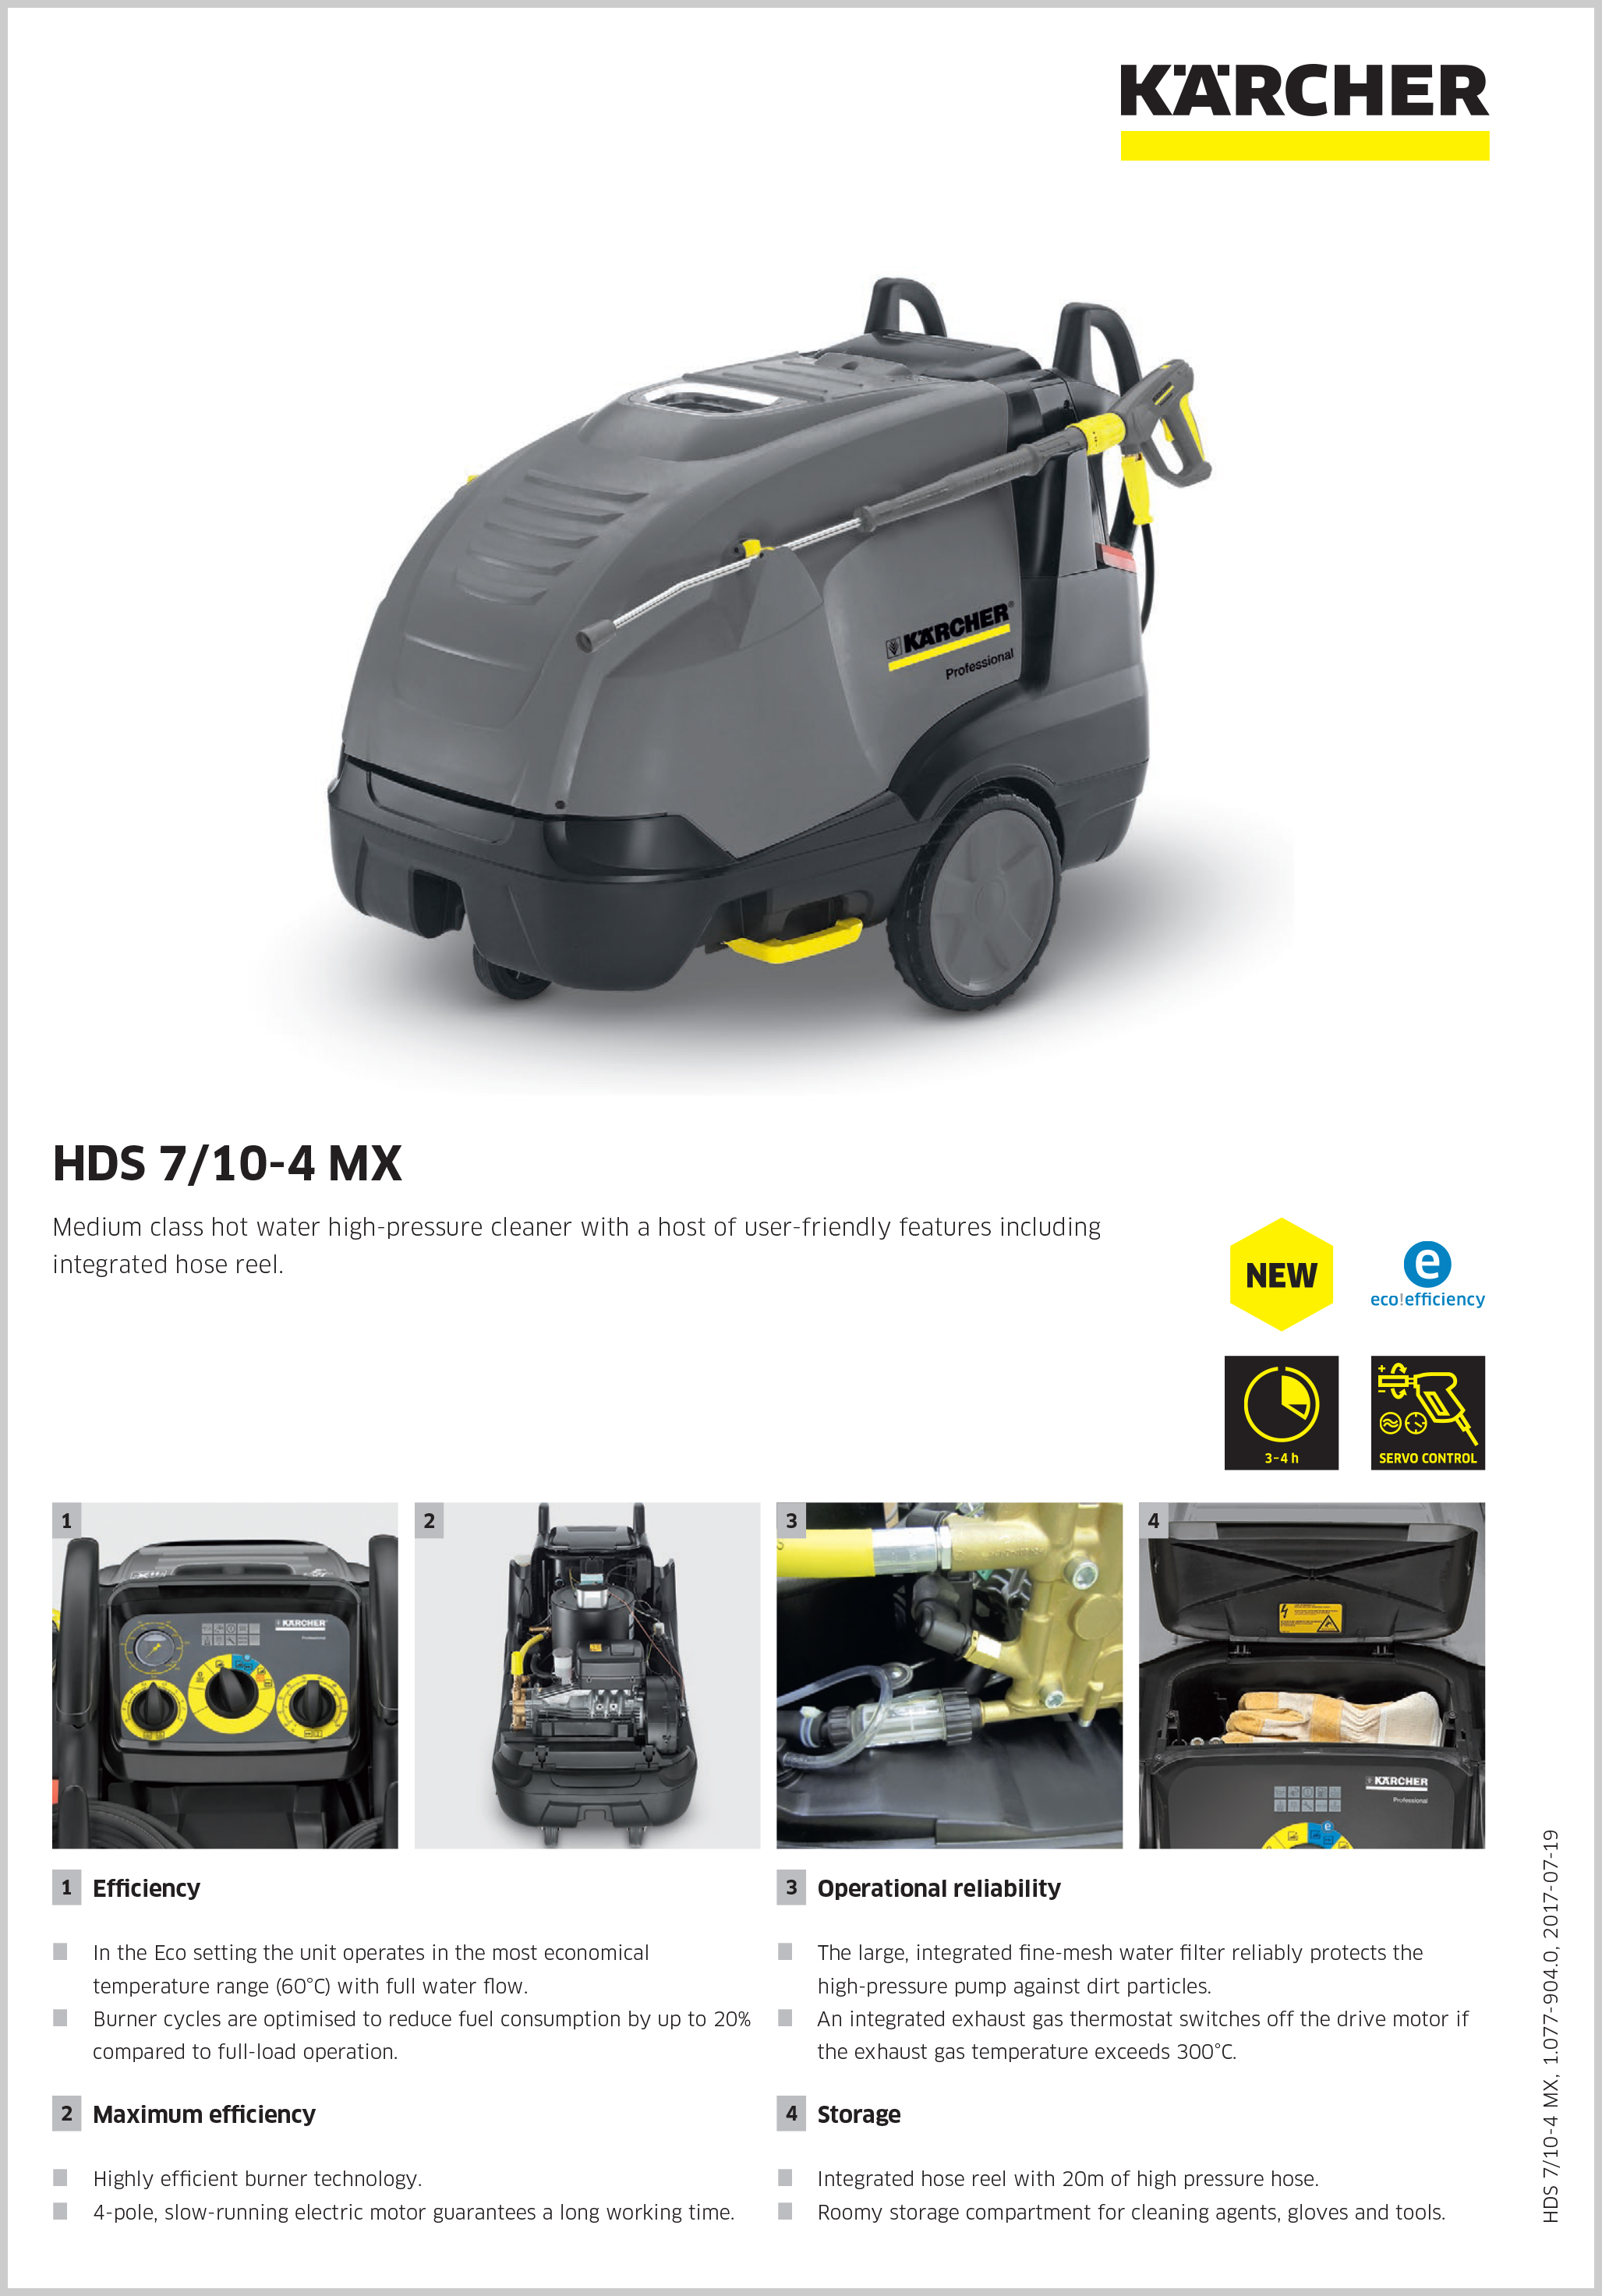 KARCHER HDS 7/10-4 MX Cold, Hot & Steam High Pressure Cleaners 4